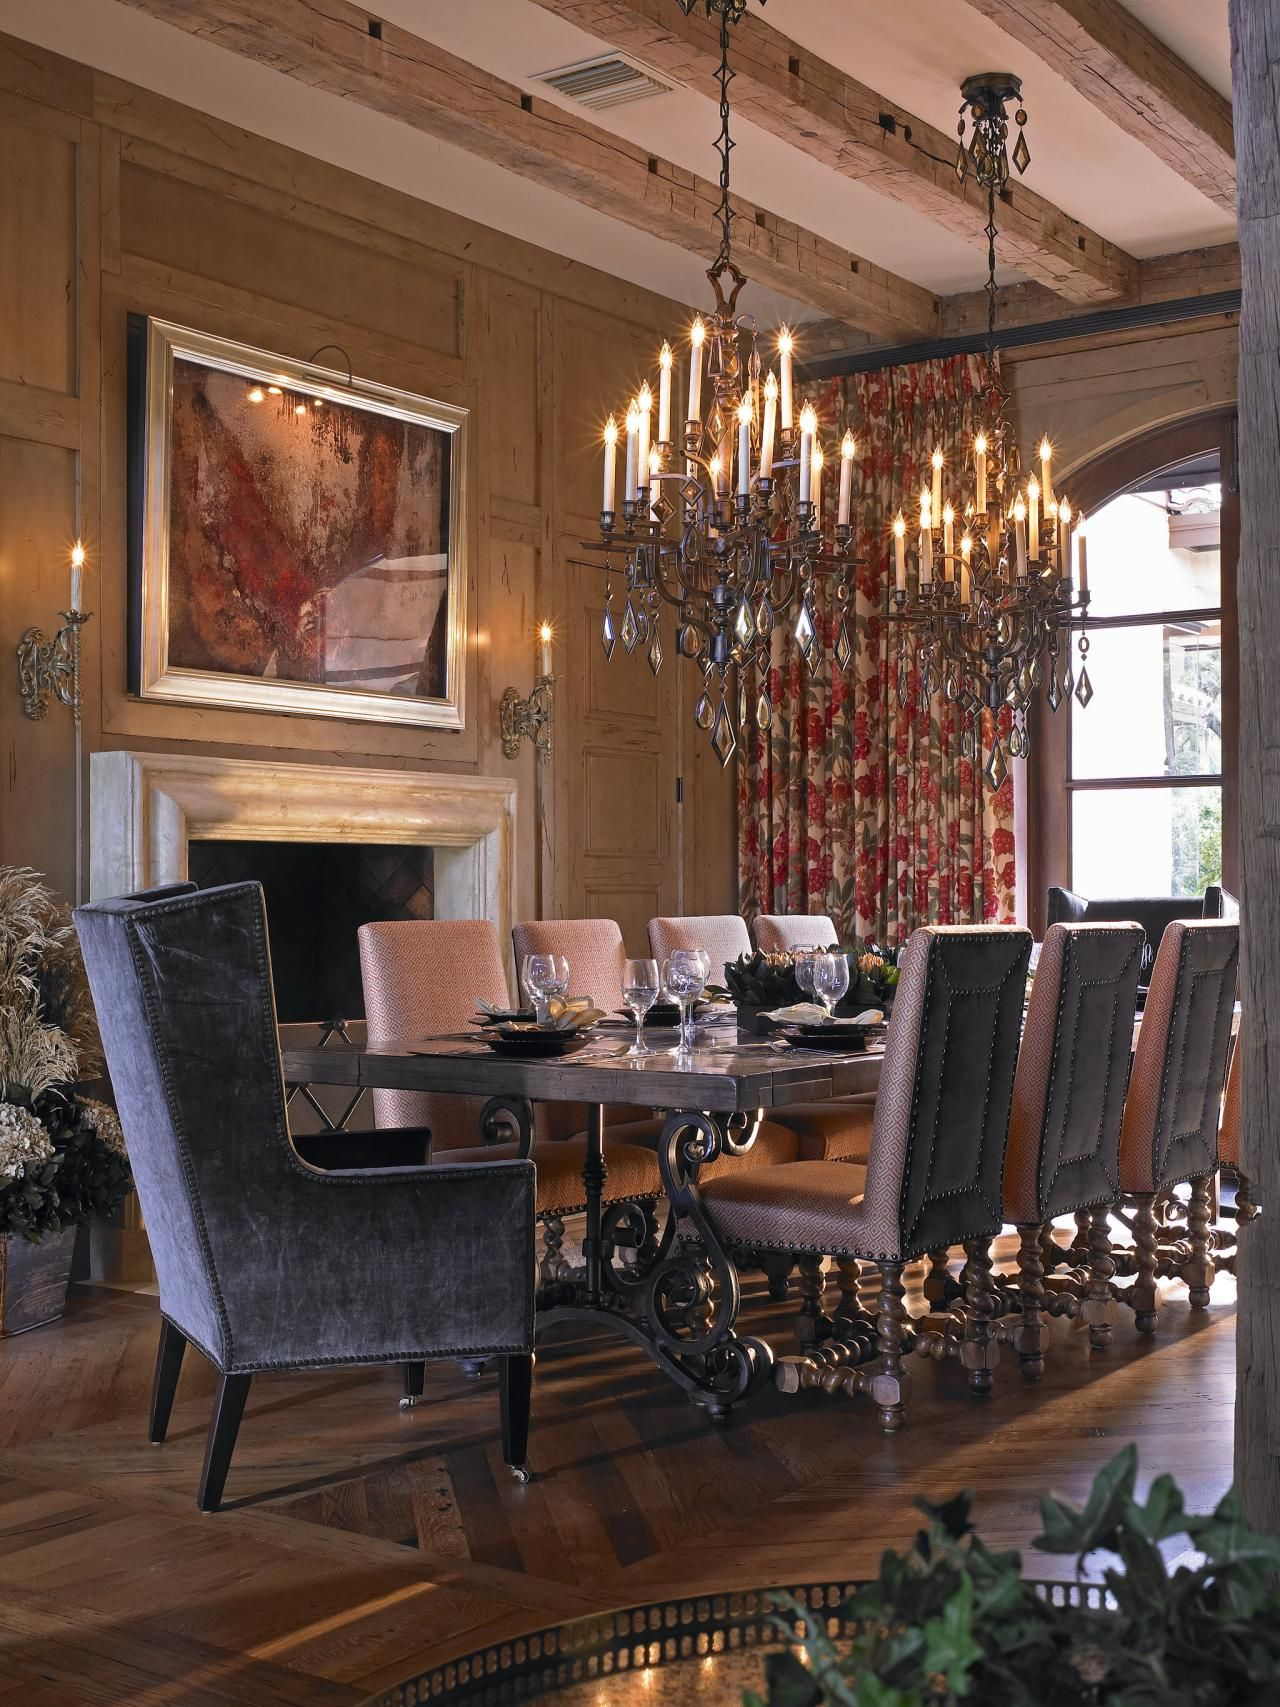 This Formal Dining Room Balances Mediterranean And Rustic Styles With Its  Beamed Ceiling And Ornately Carved